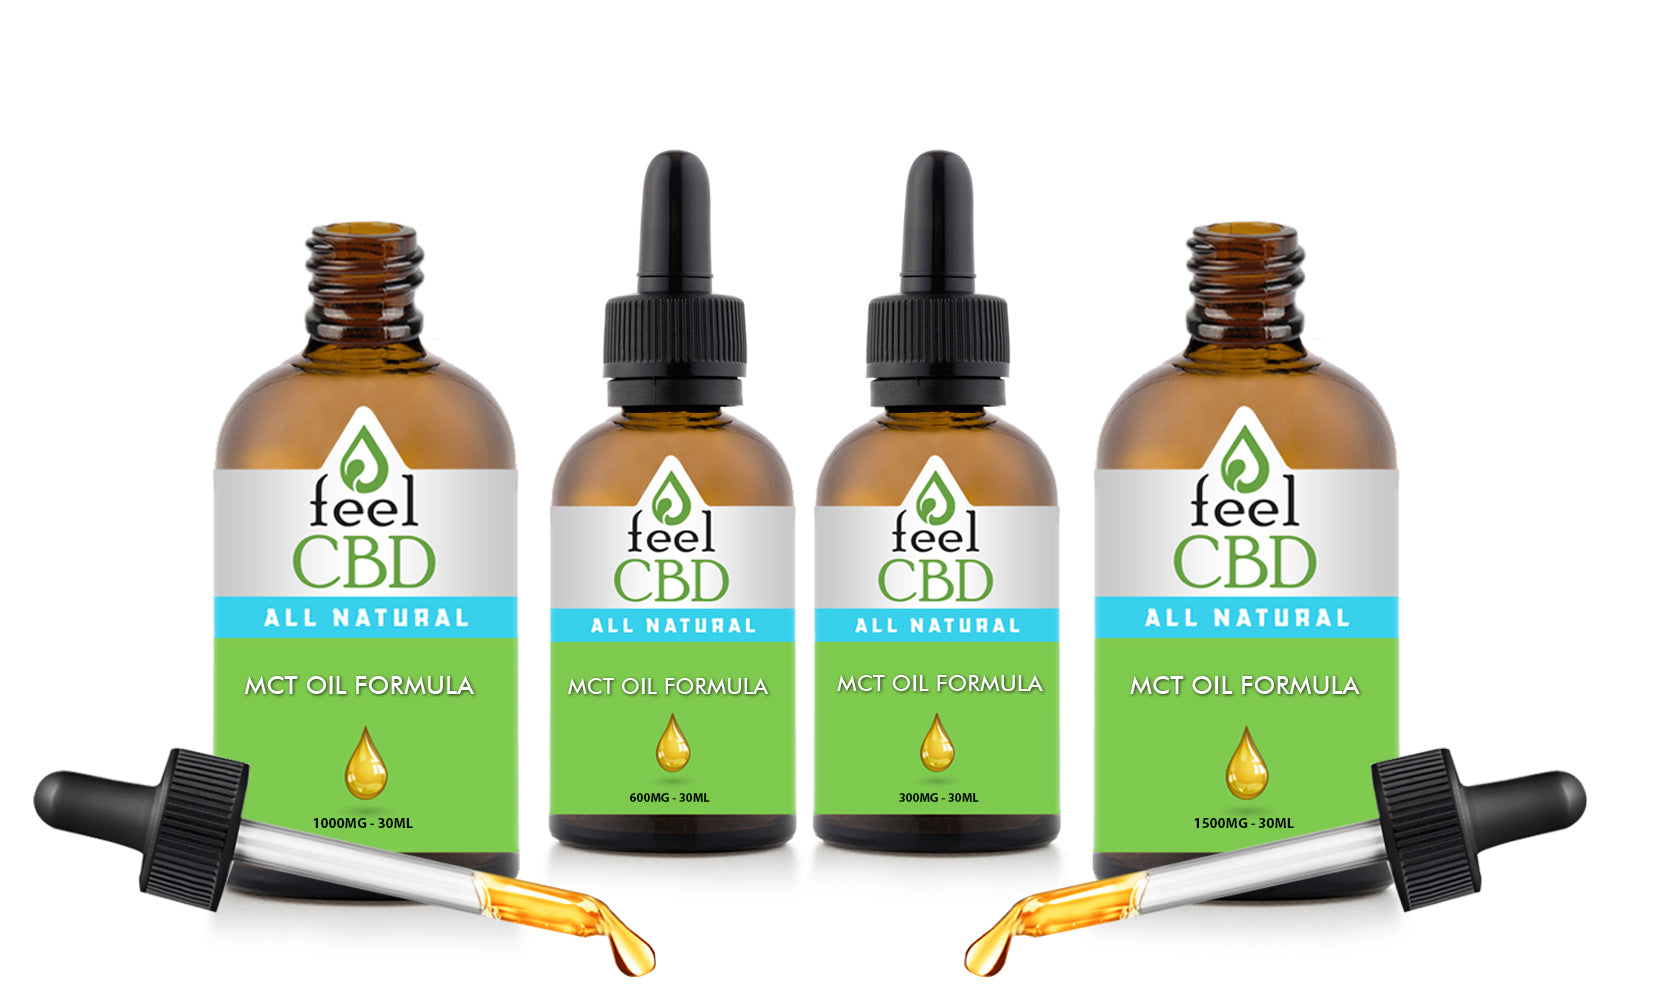 CBD with MCT Oil Tincture from myCBD (30mg, 600mg, 1000mg or 1500mg)